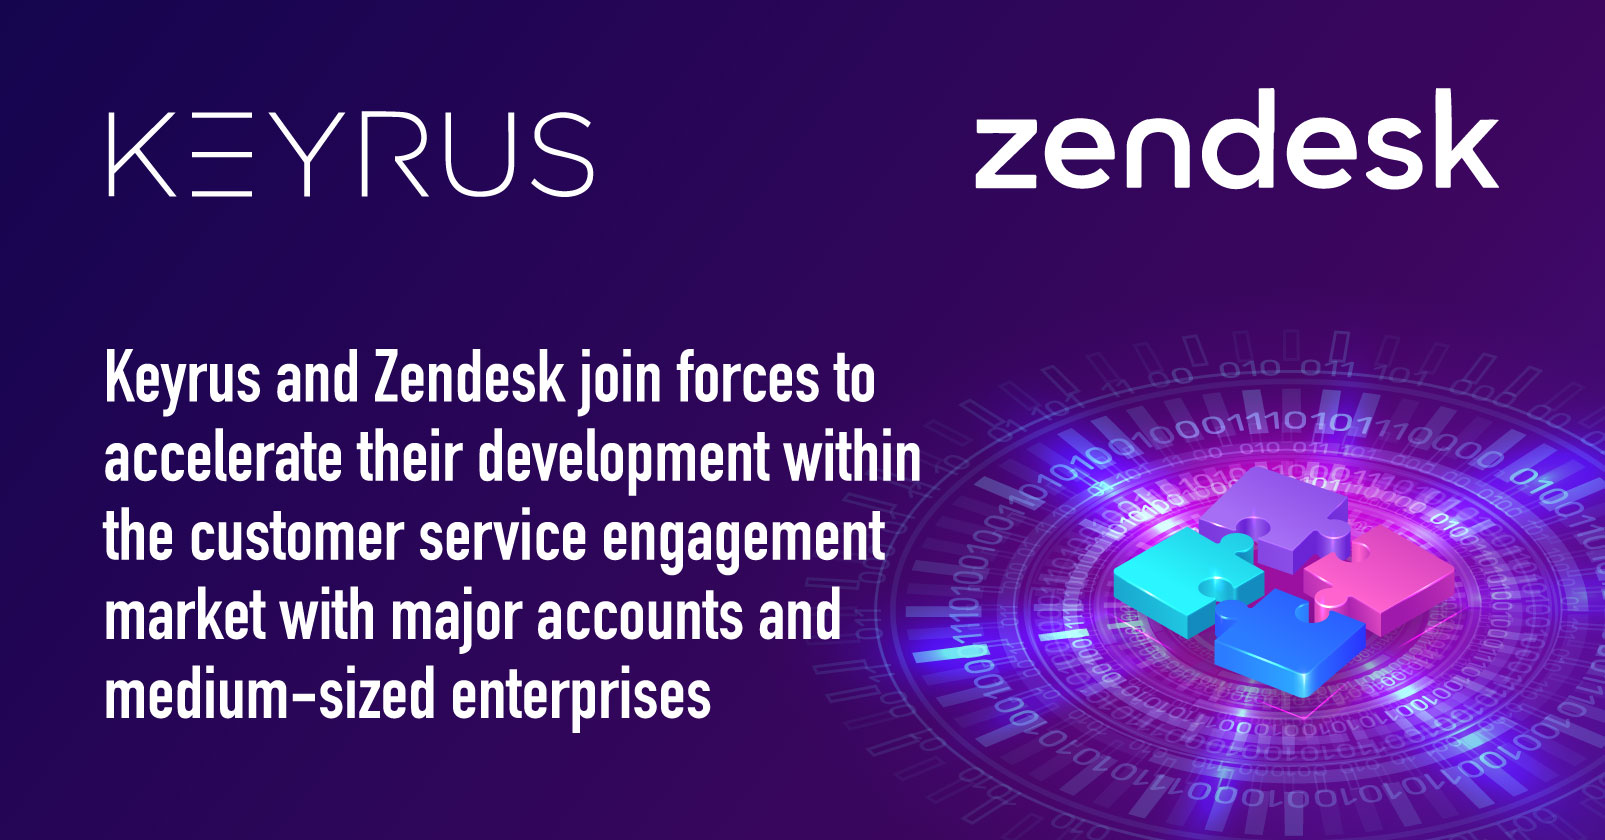 PR Keyrus and Zendesk